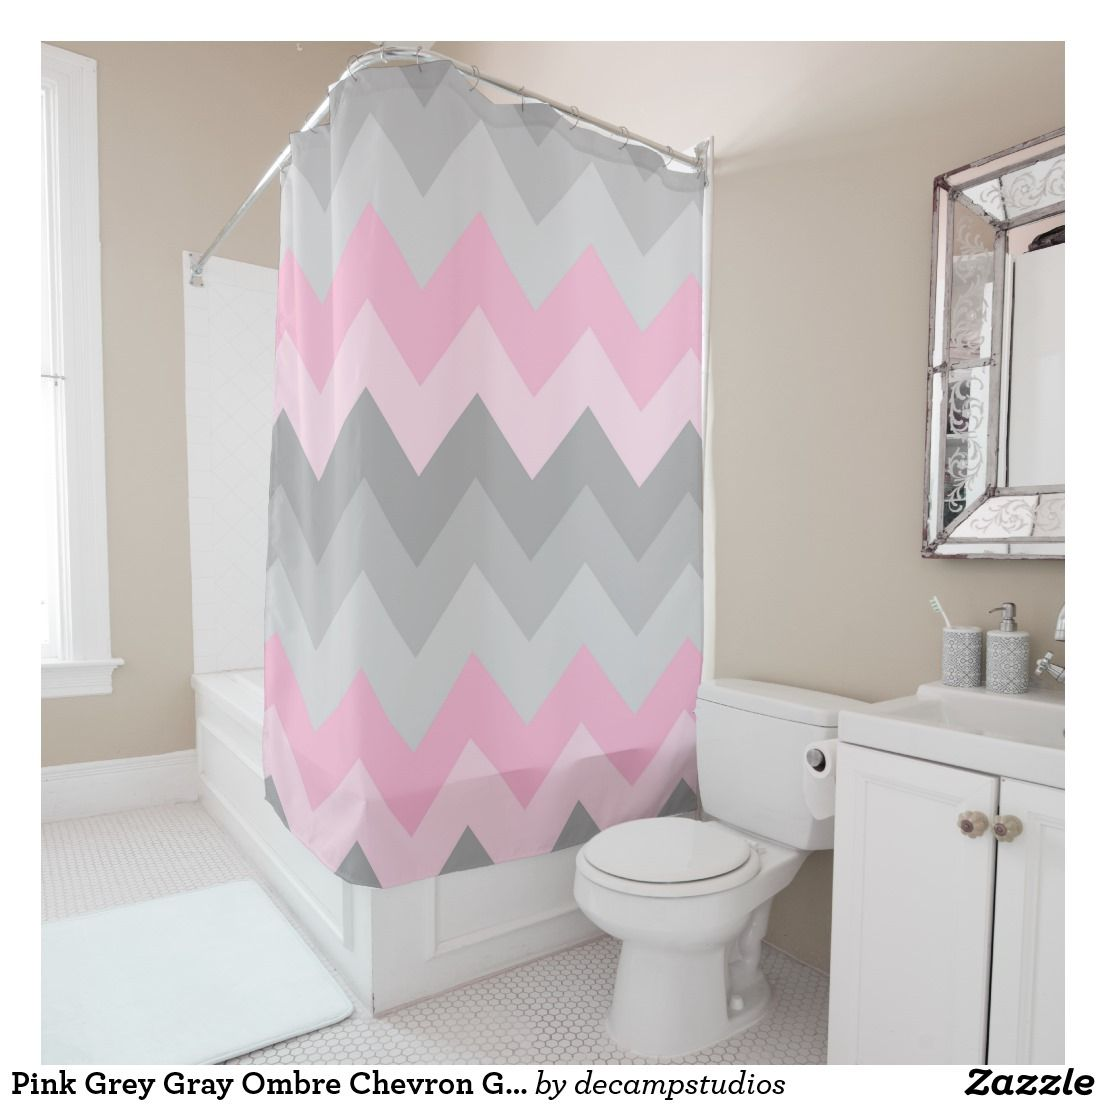 Pink Grey Gray Ombre Chevron Girl Bathroom Shower Curtain Zazzle